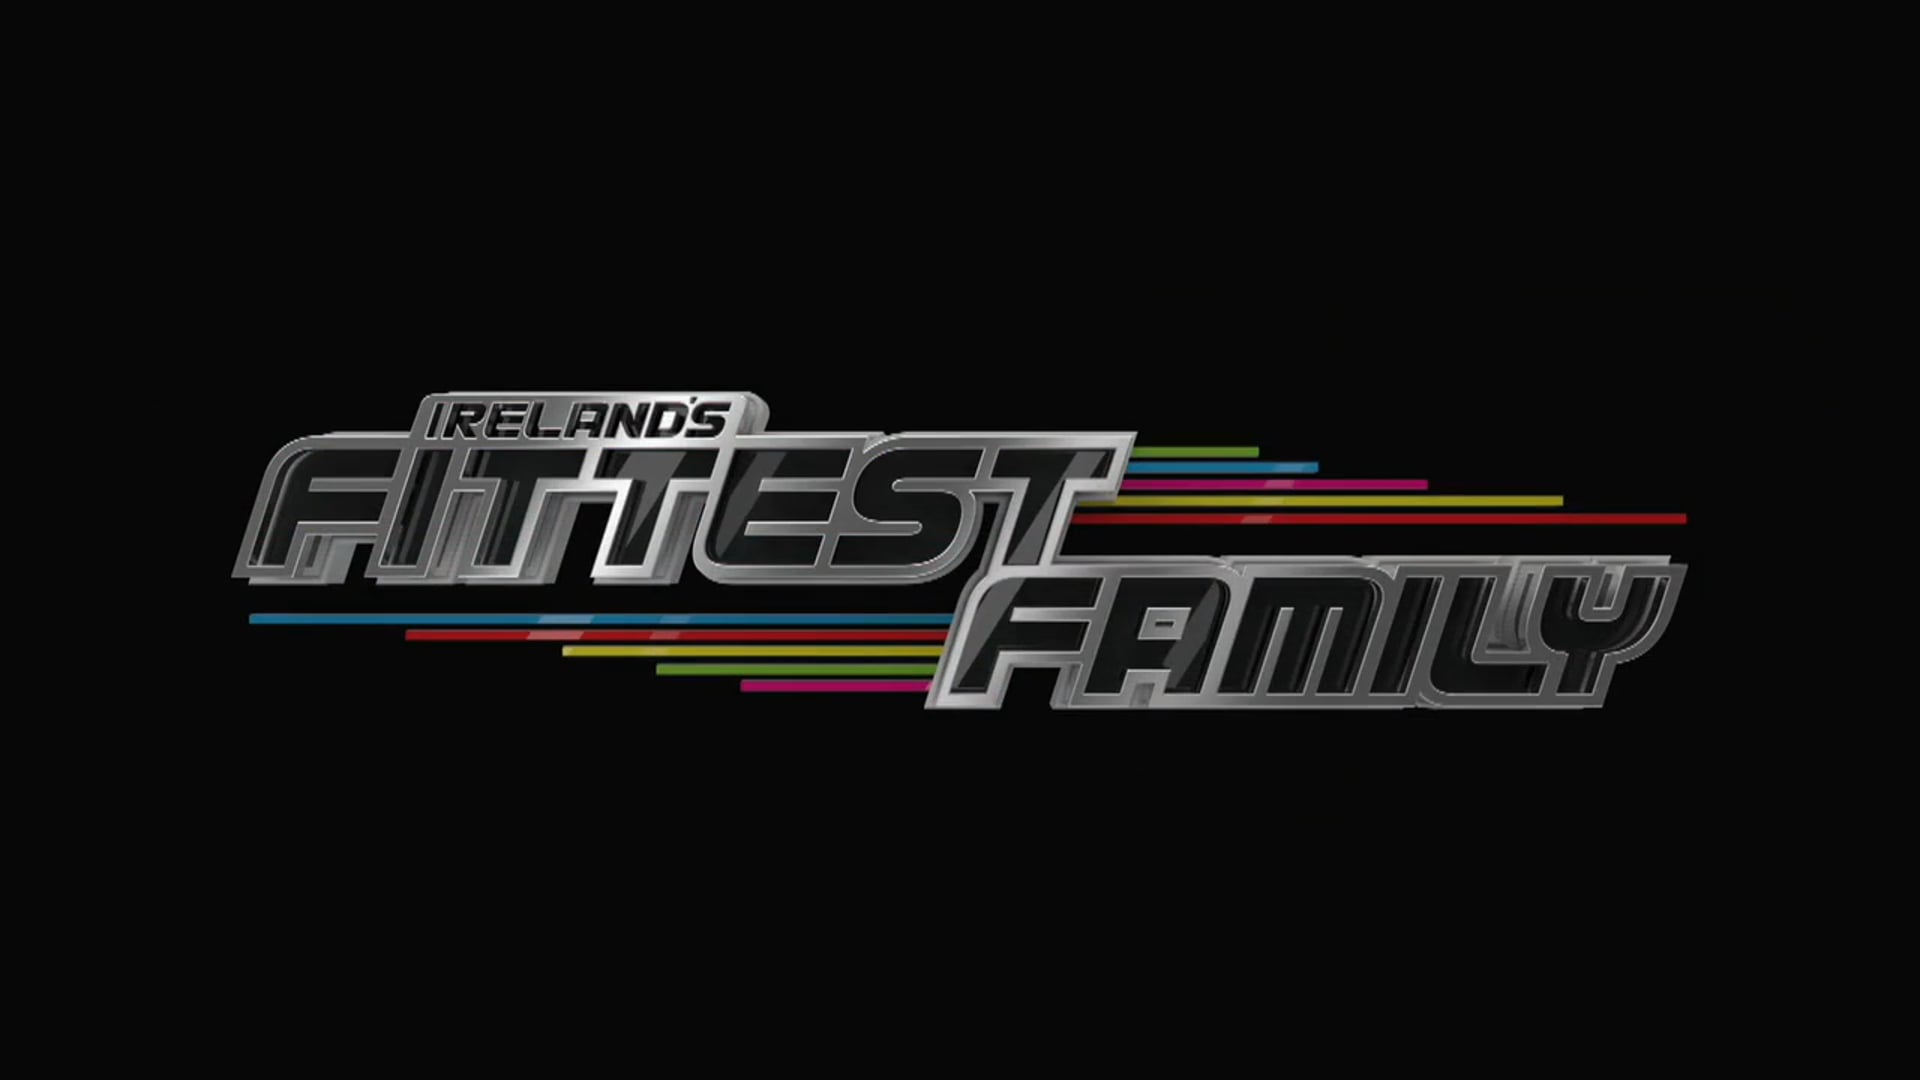 Ireland's Fittest Family 5